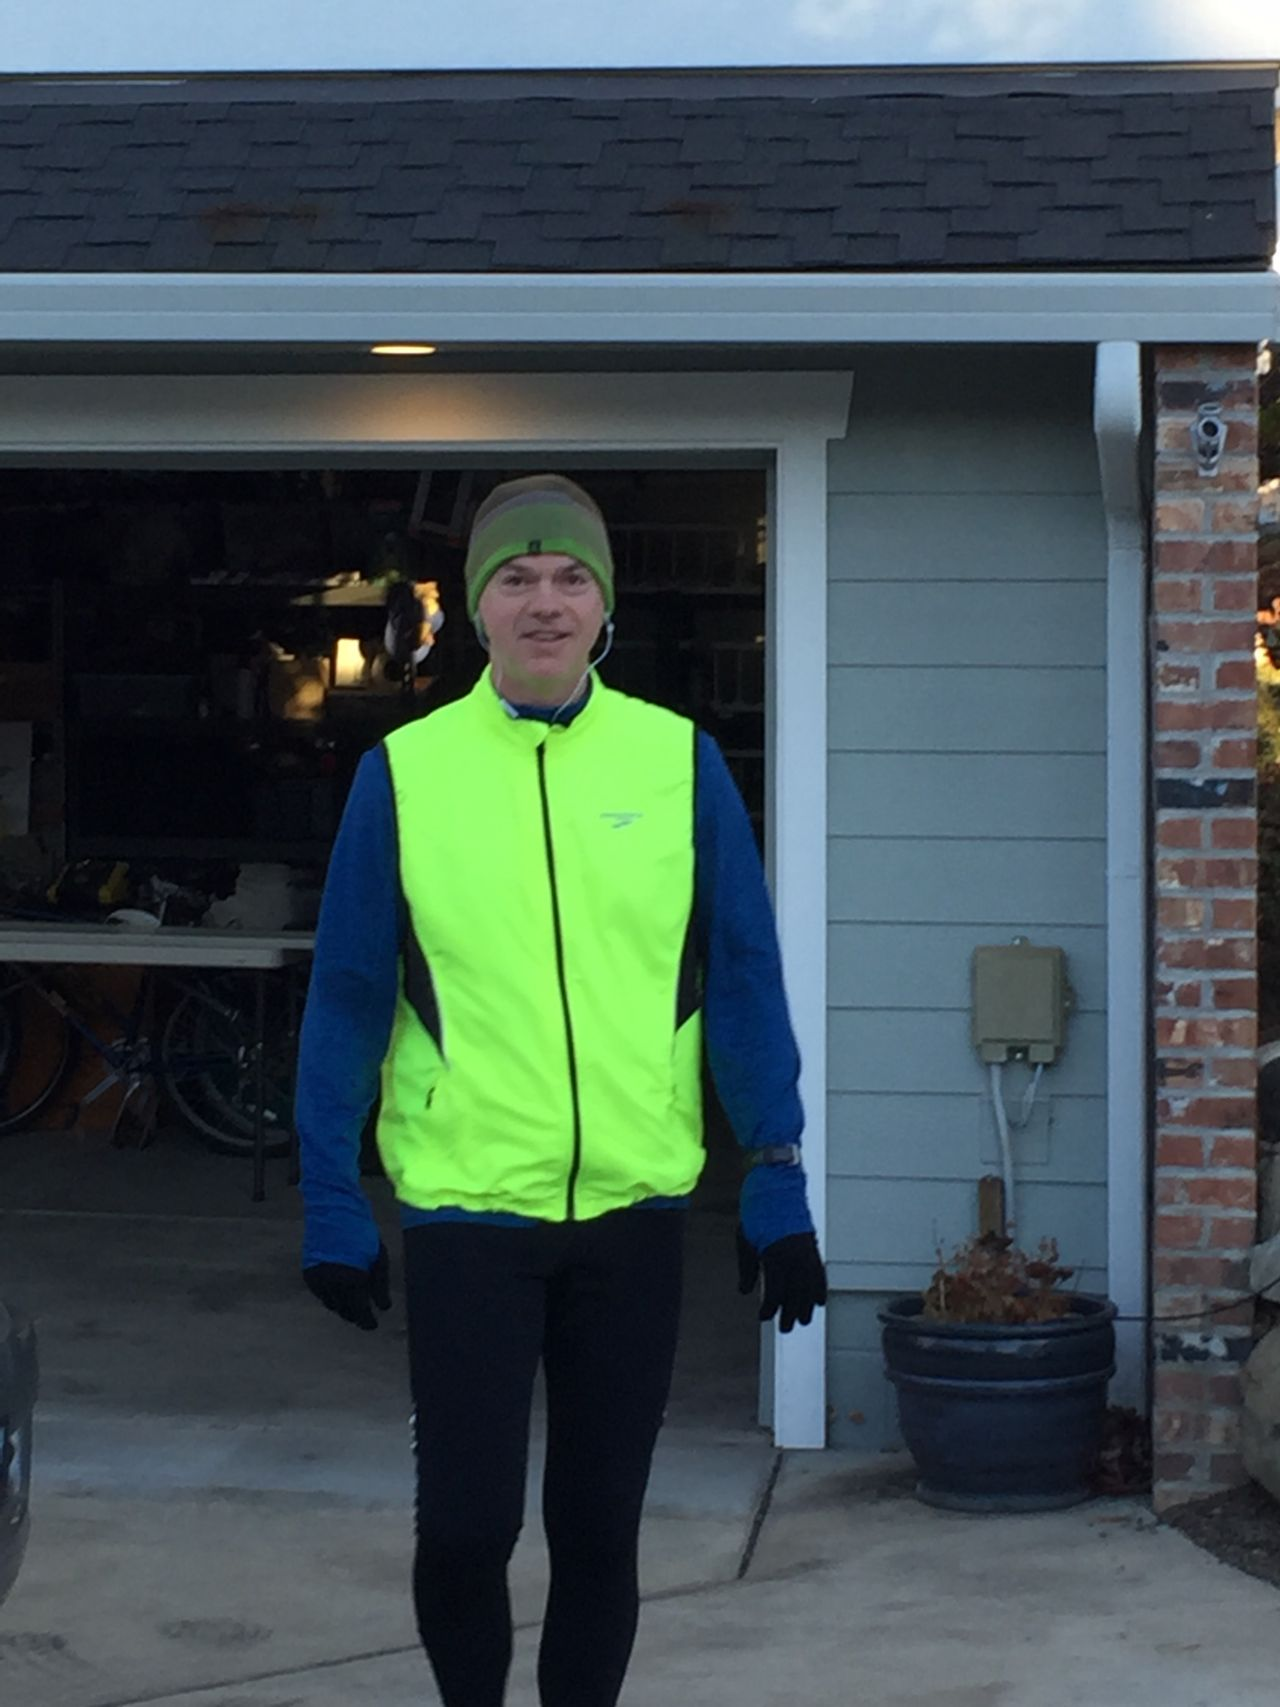 Dr. Merrill in his running gear.